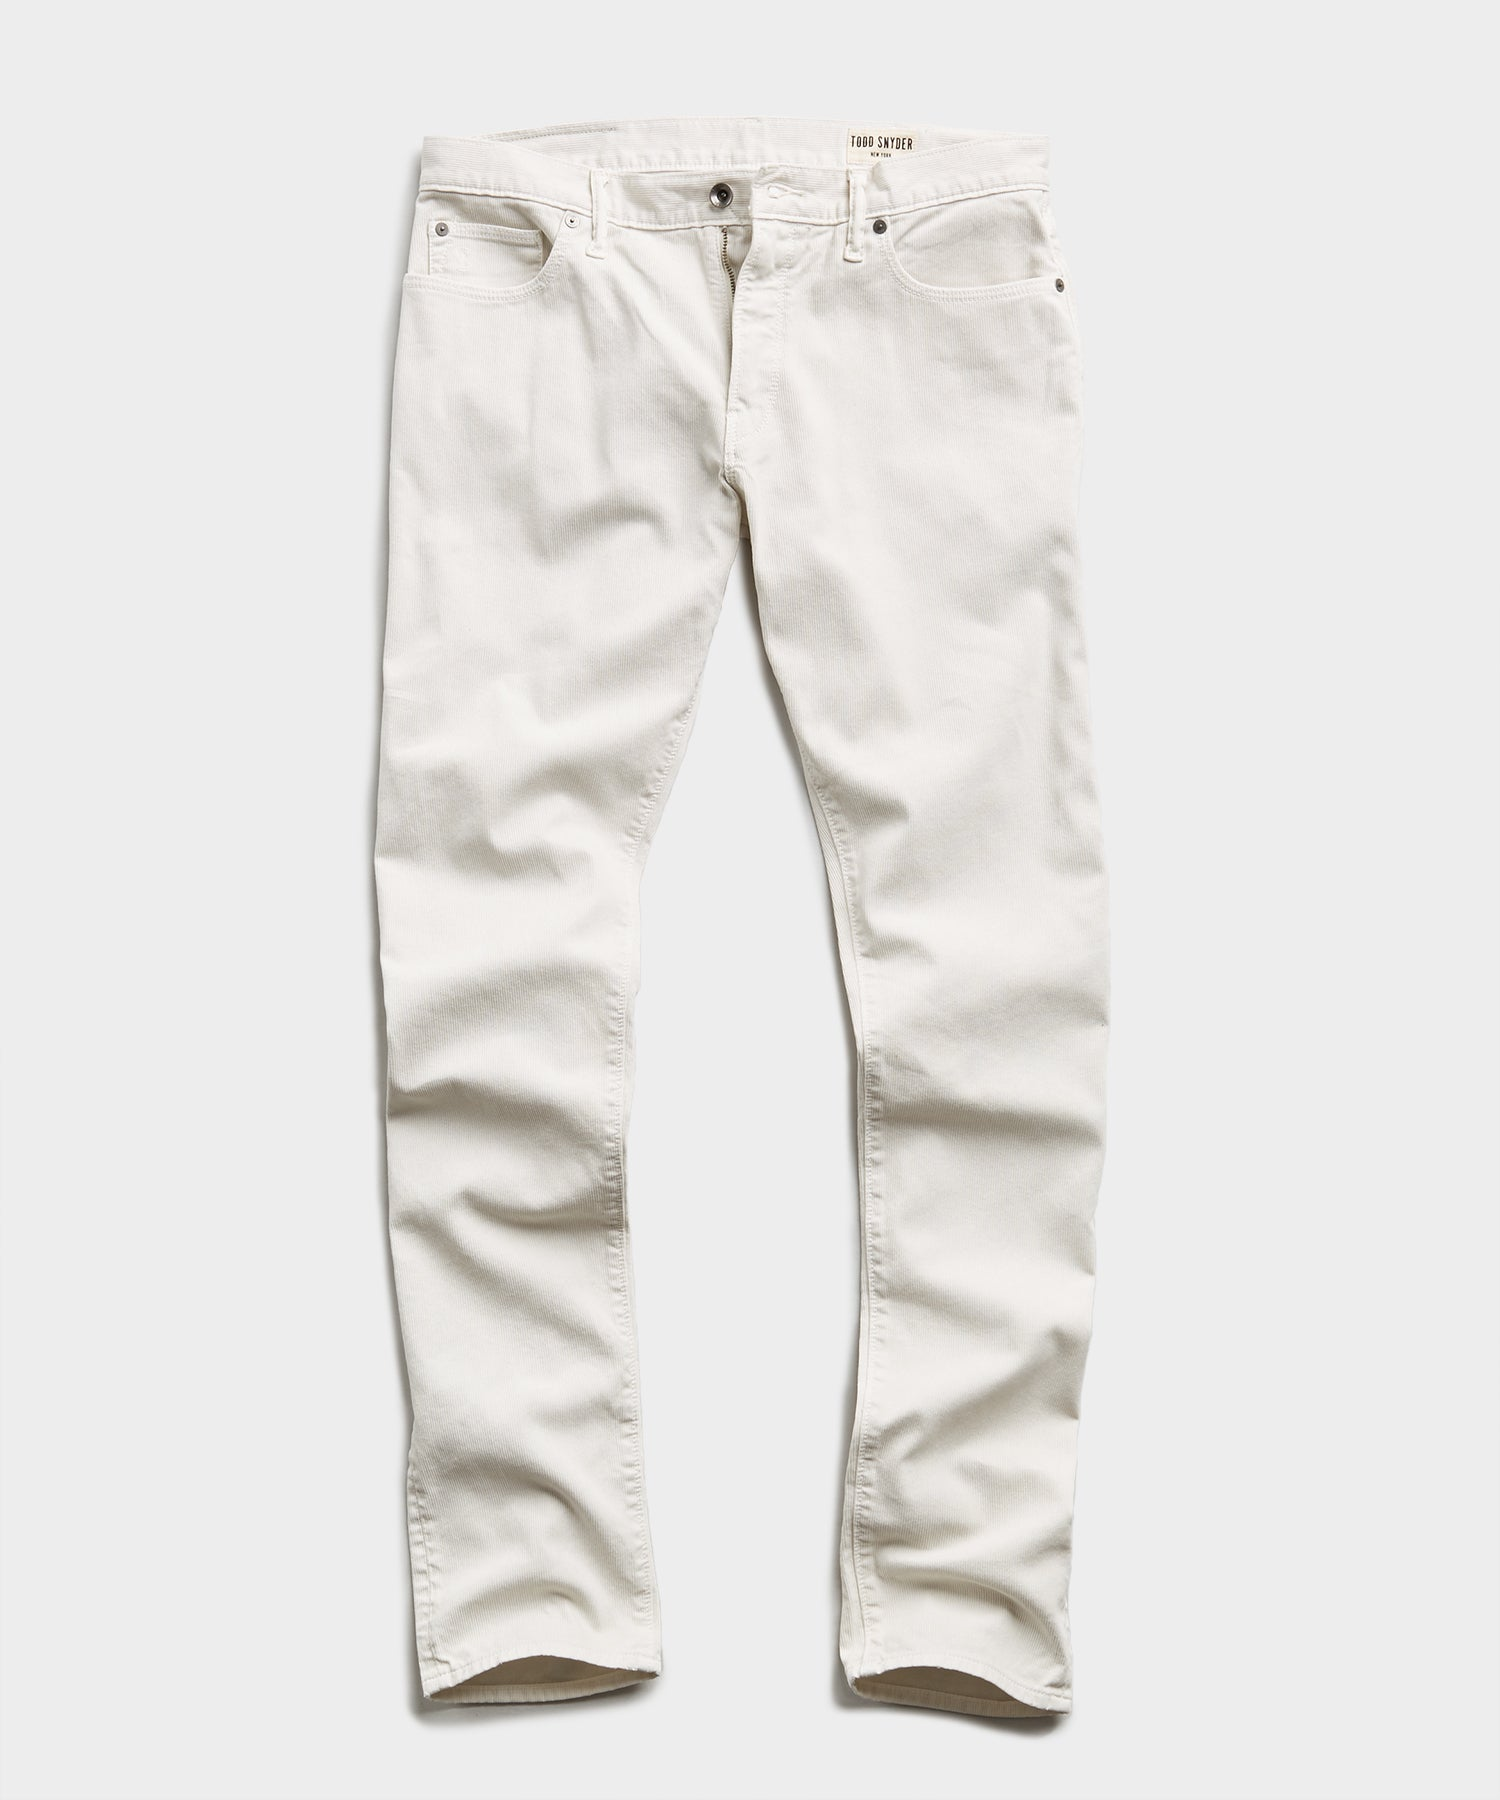 SLIM FIT 5-POCKET BEDFORD CORD PANT IN BIRCH